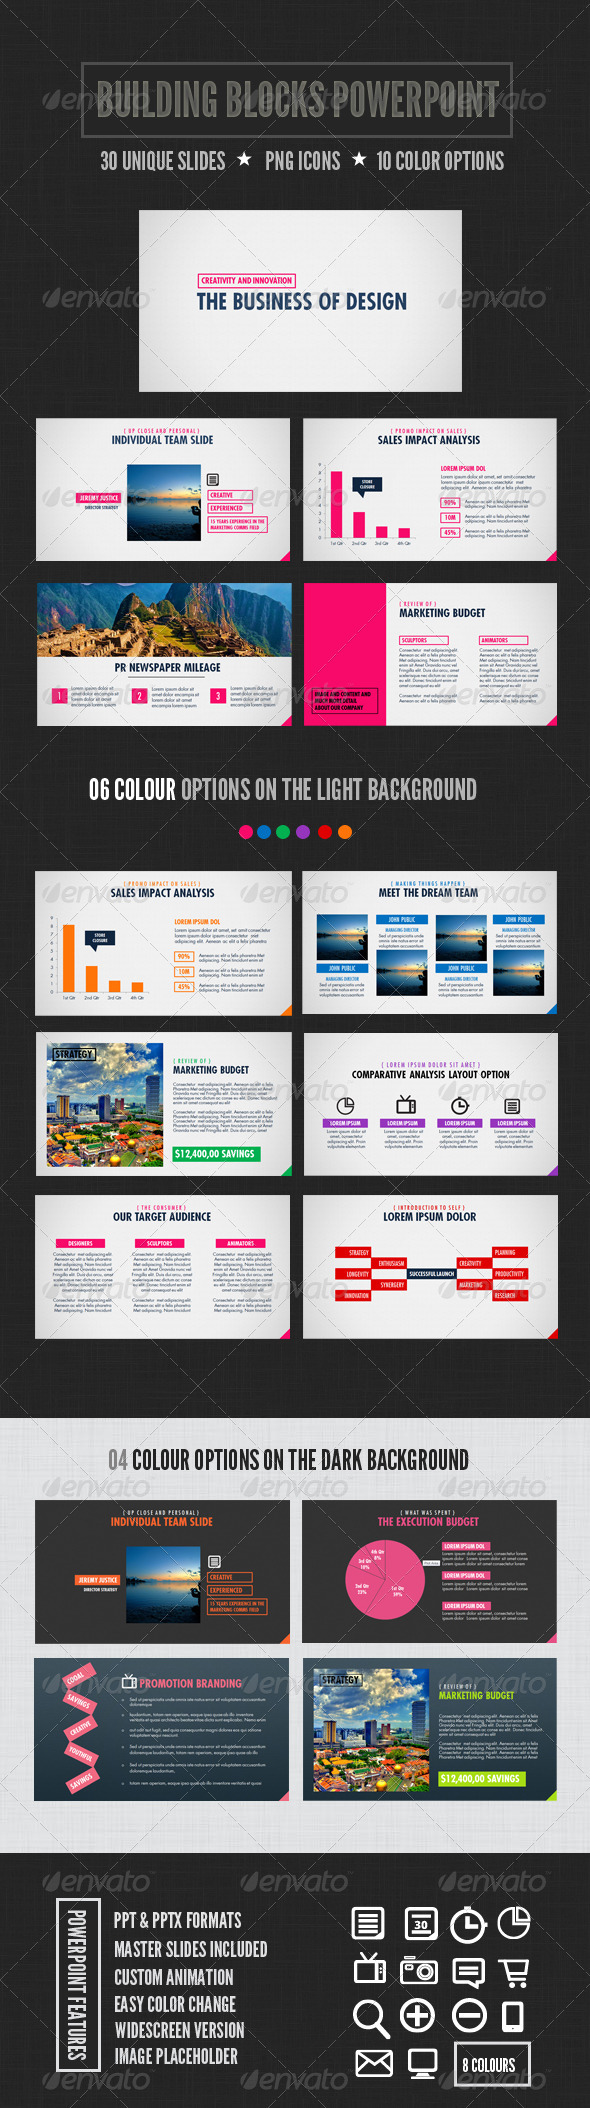 GraphicRiver Building Blocks Powerpoint 3336558